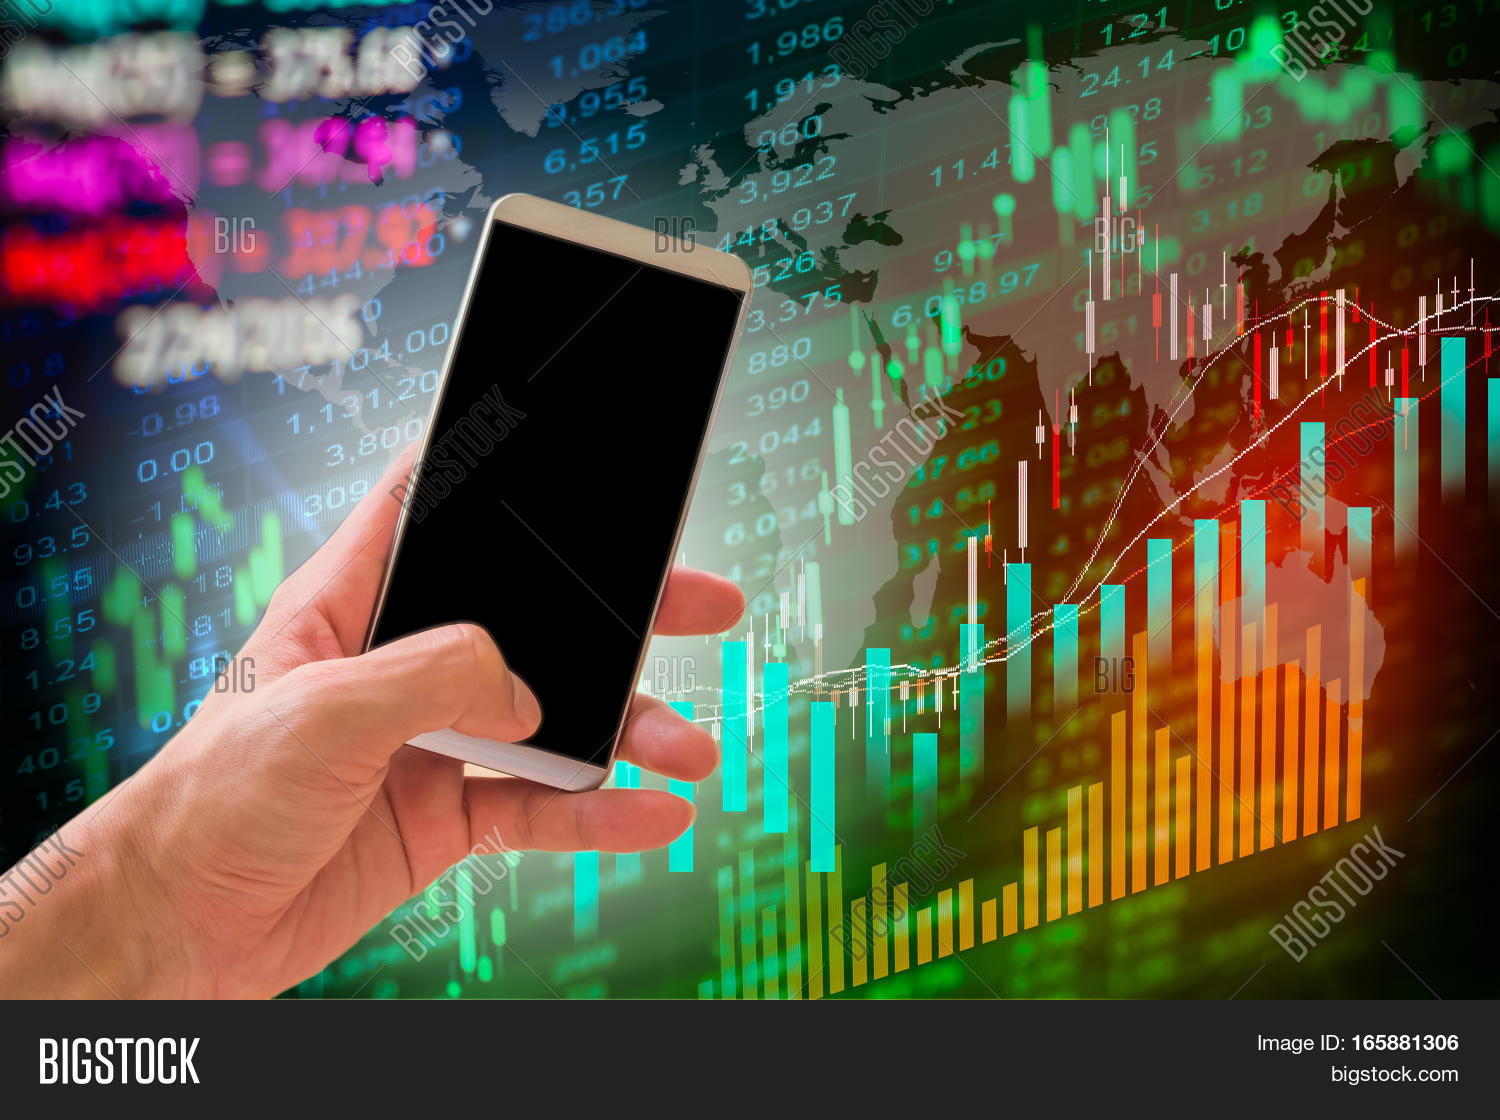 Hand hold smart phone on stock market and financial data – Stock Market Analysis Sample